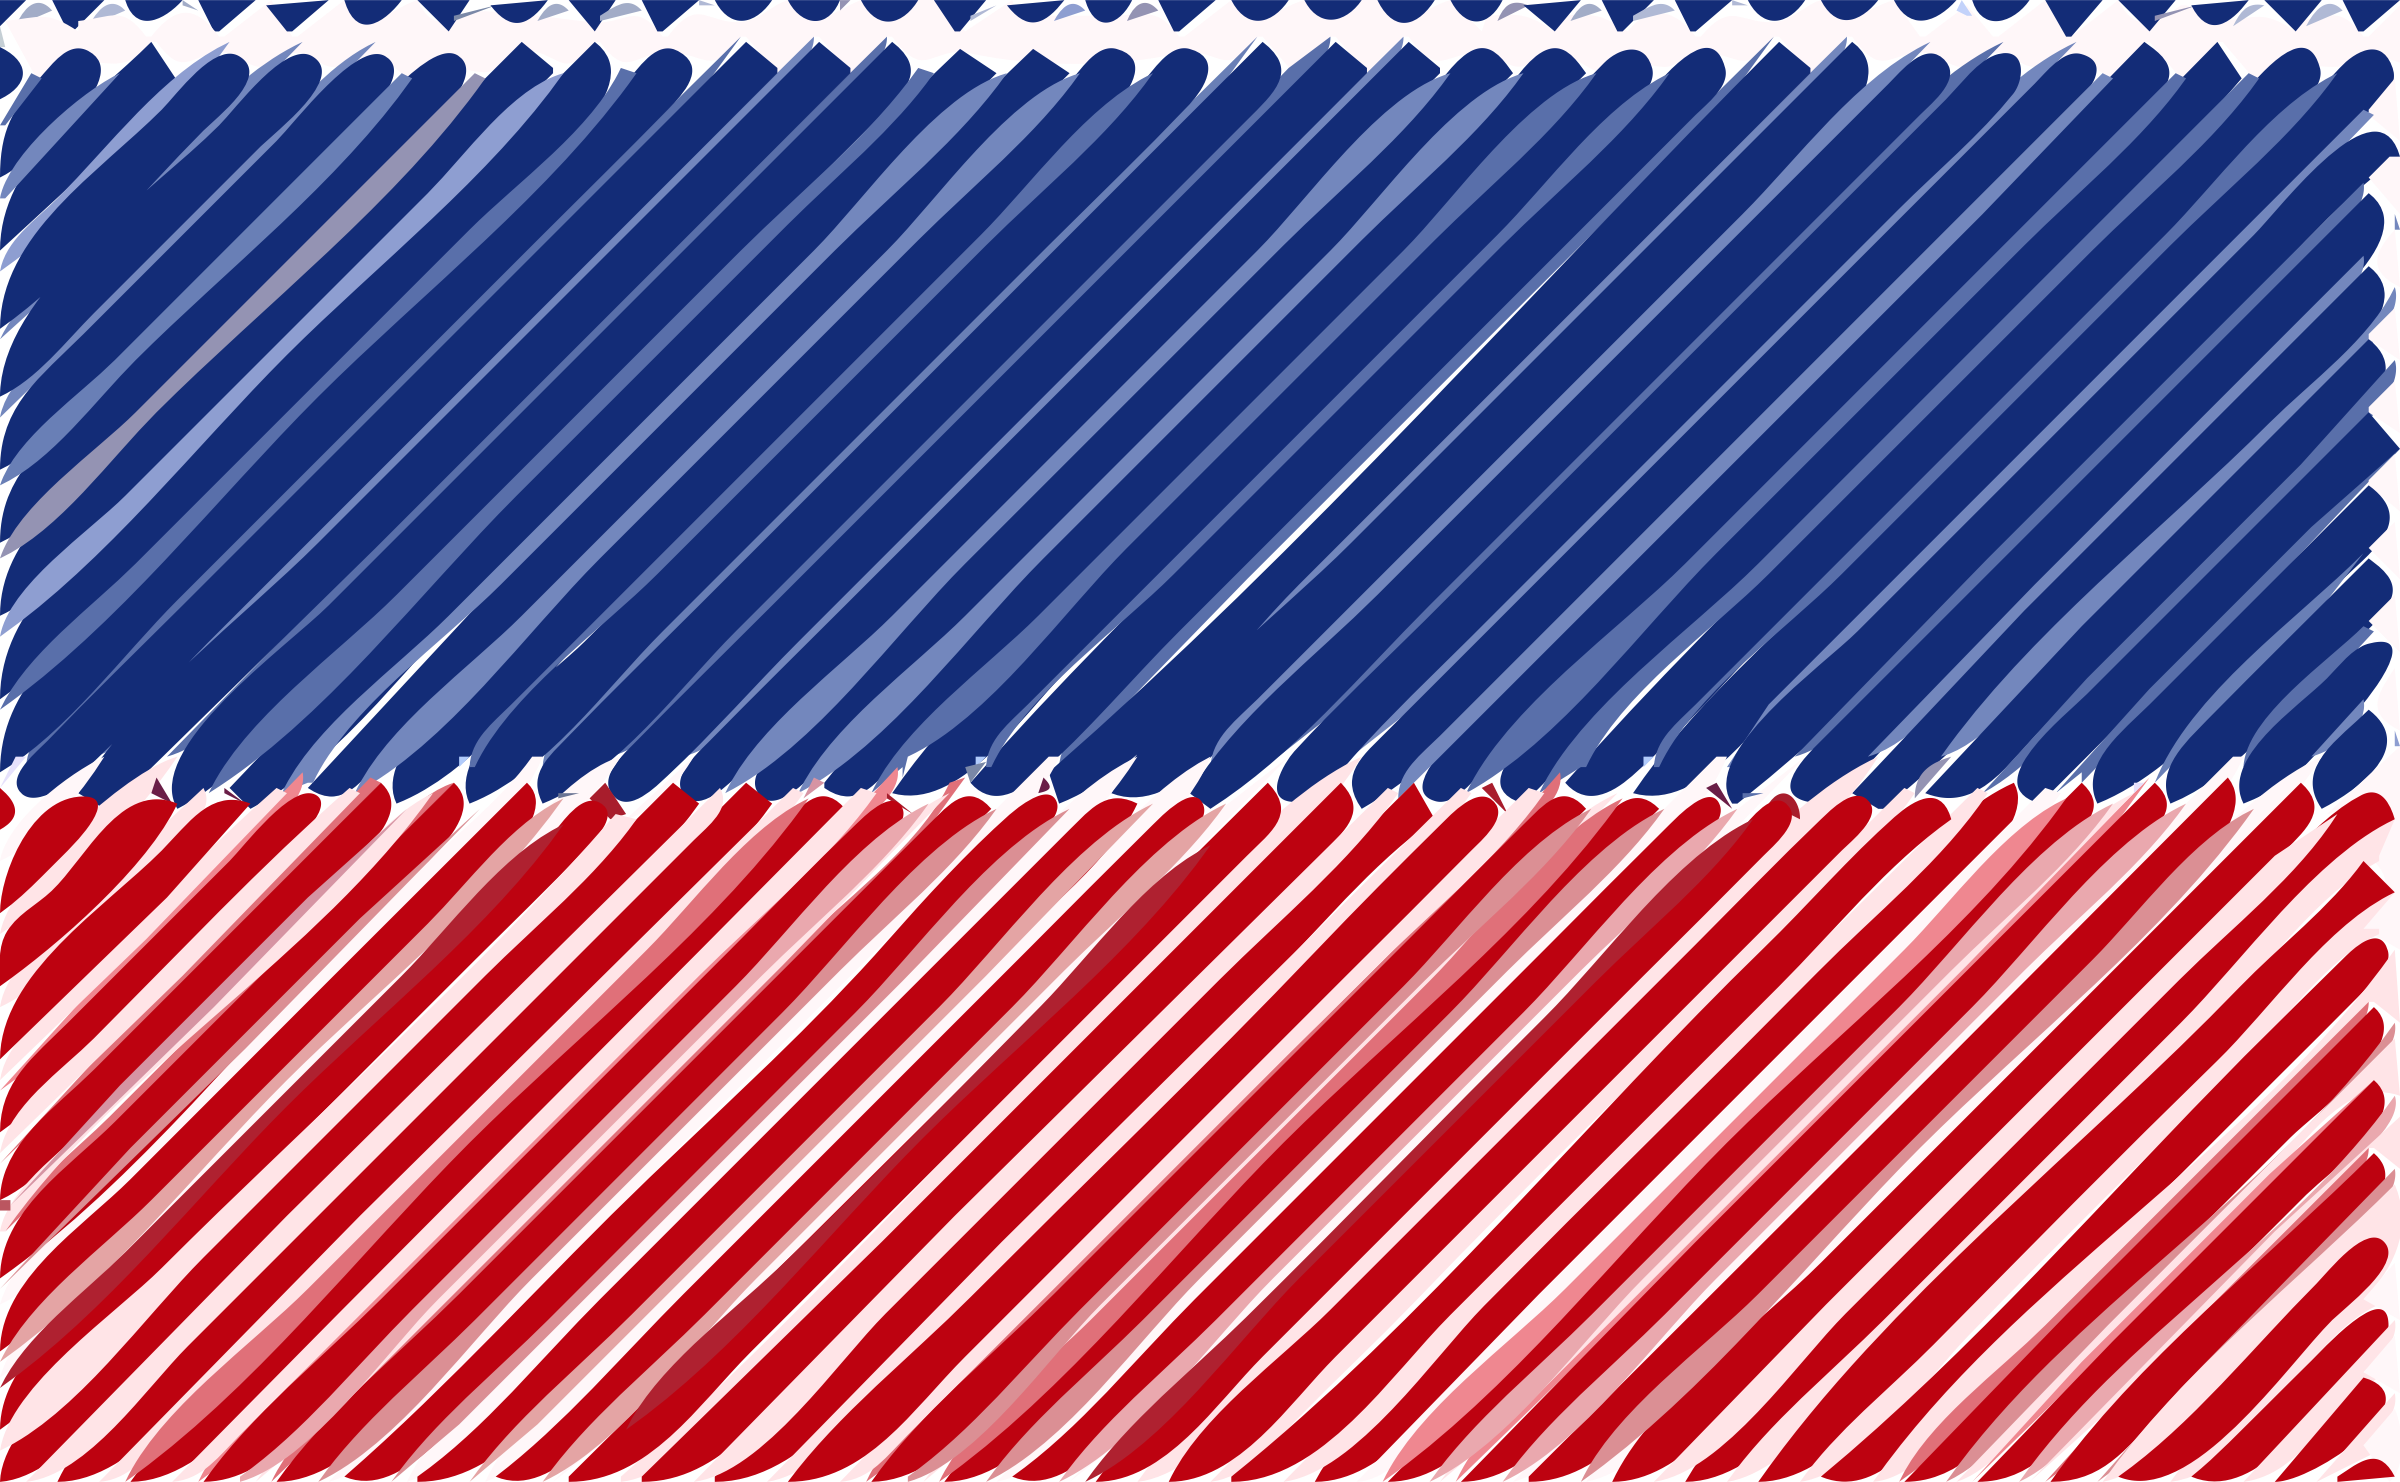 Haiti flag linear by Joesph